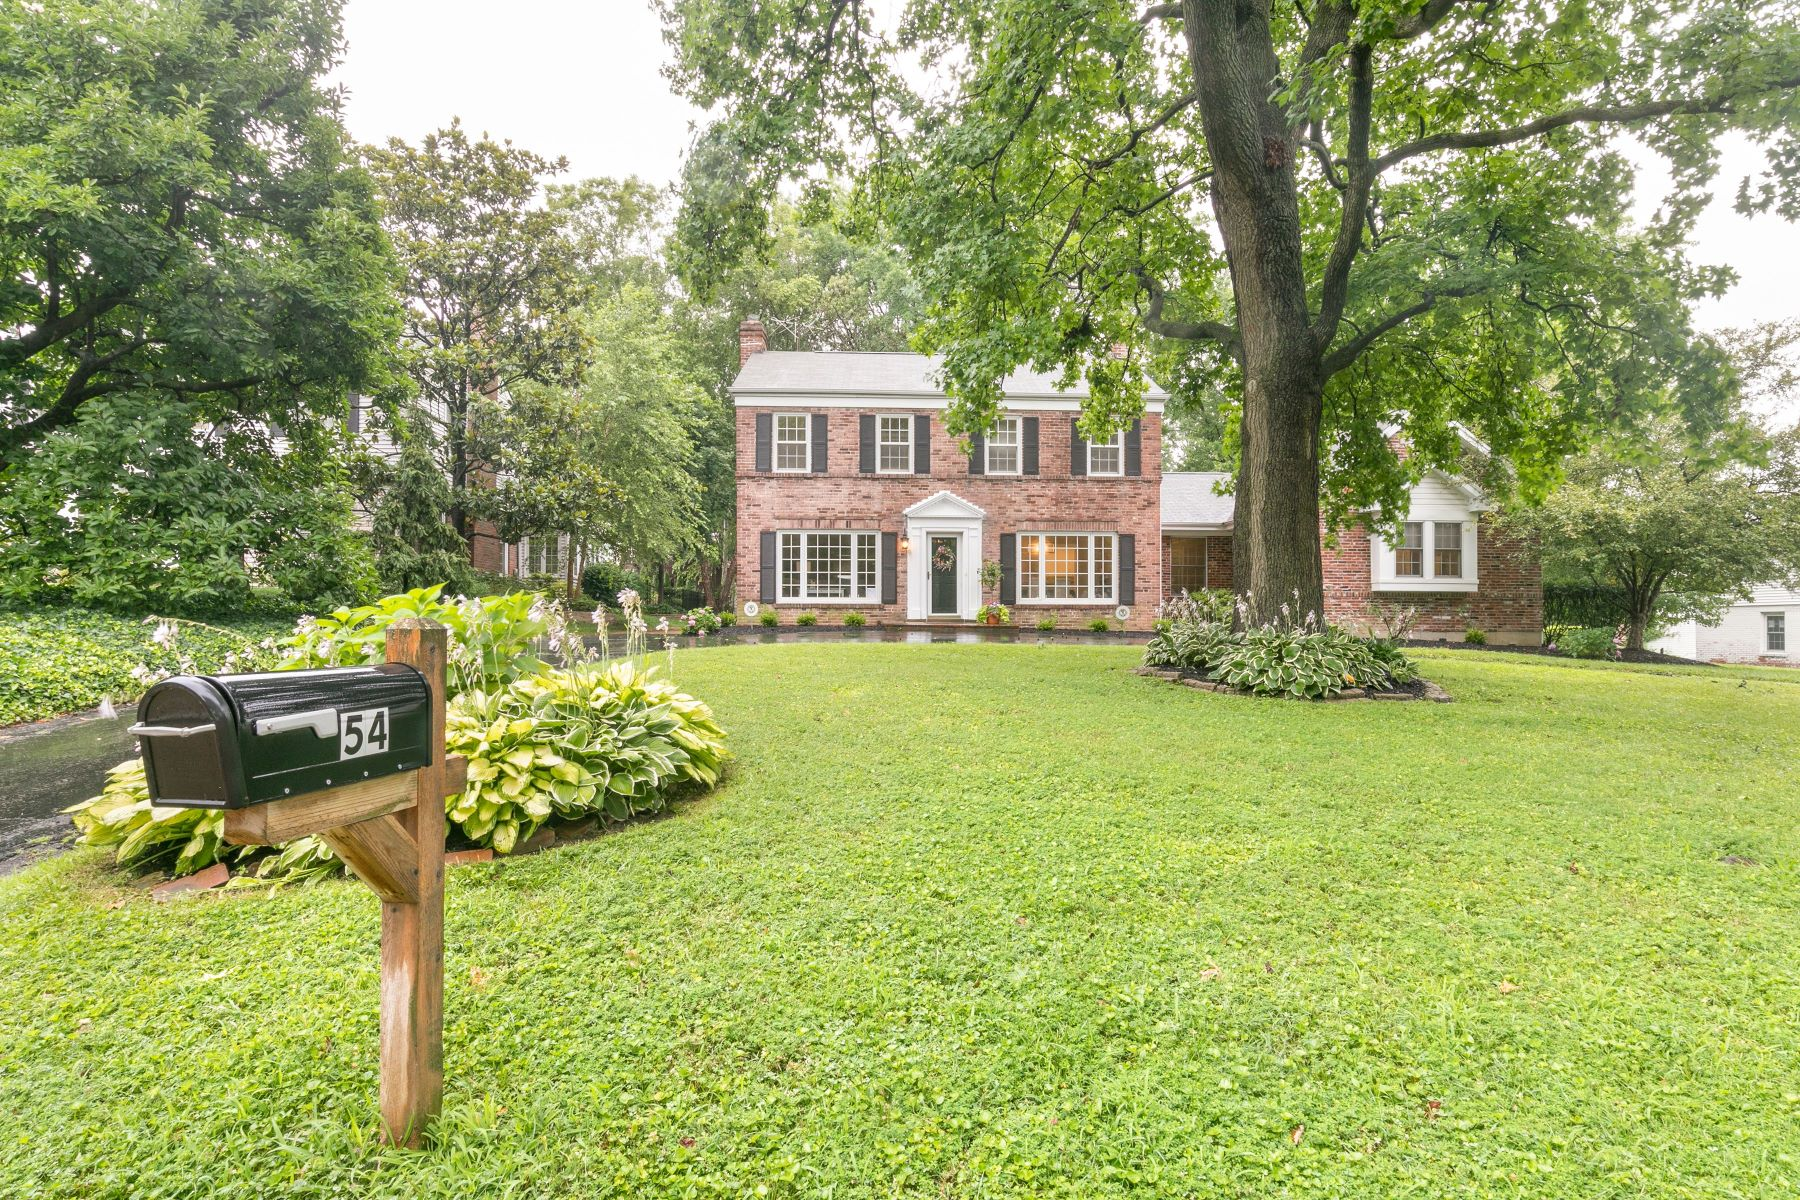 Single Family Homes for Sale at Chevy Chase pastoral setting & modern elegance converge 54 Highgate Road Olivette, Missouri 63132 United States